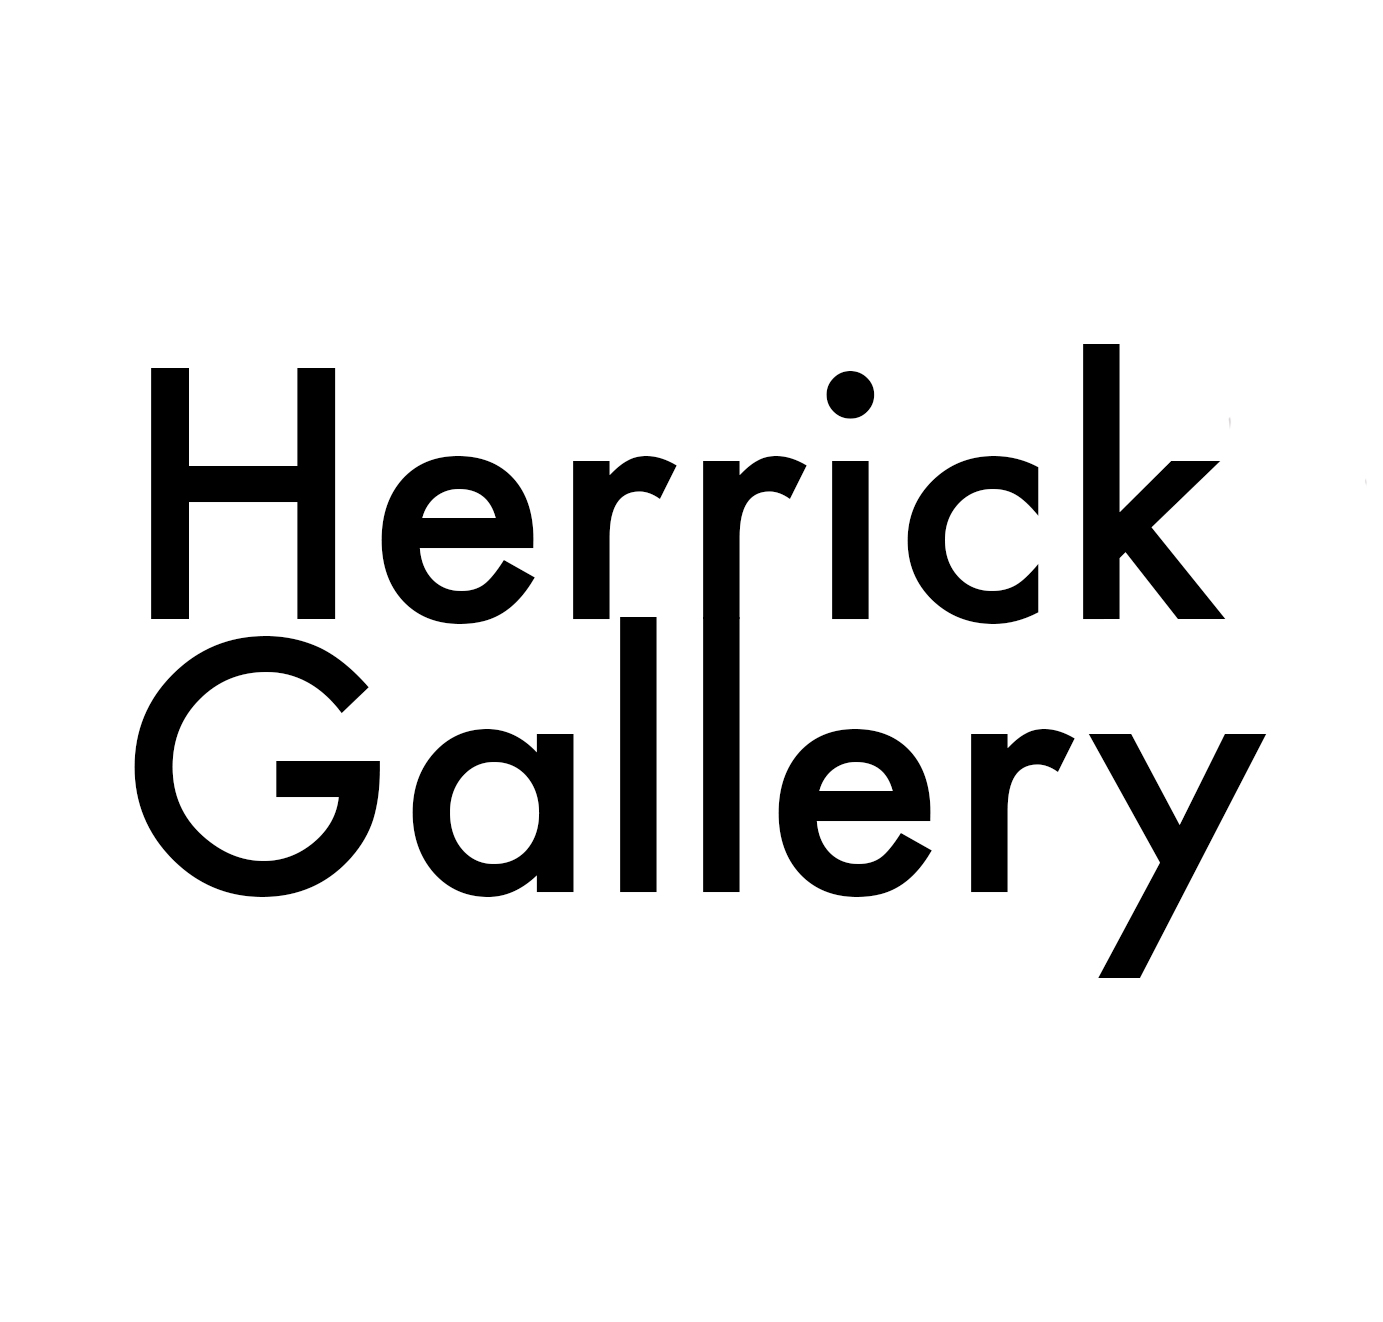 FIRST EXHIBITED AT THE HERRICK GALLERY, MAYFAIR, LONDON